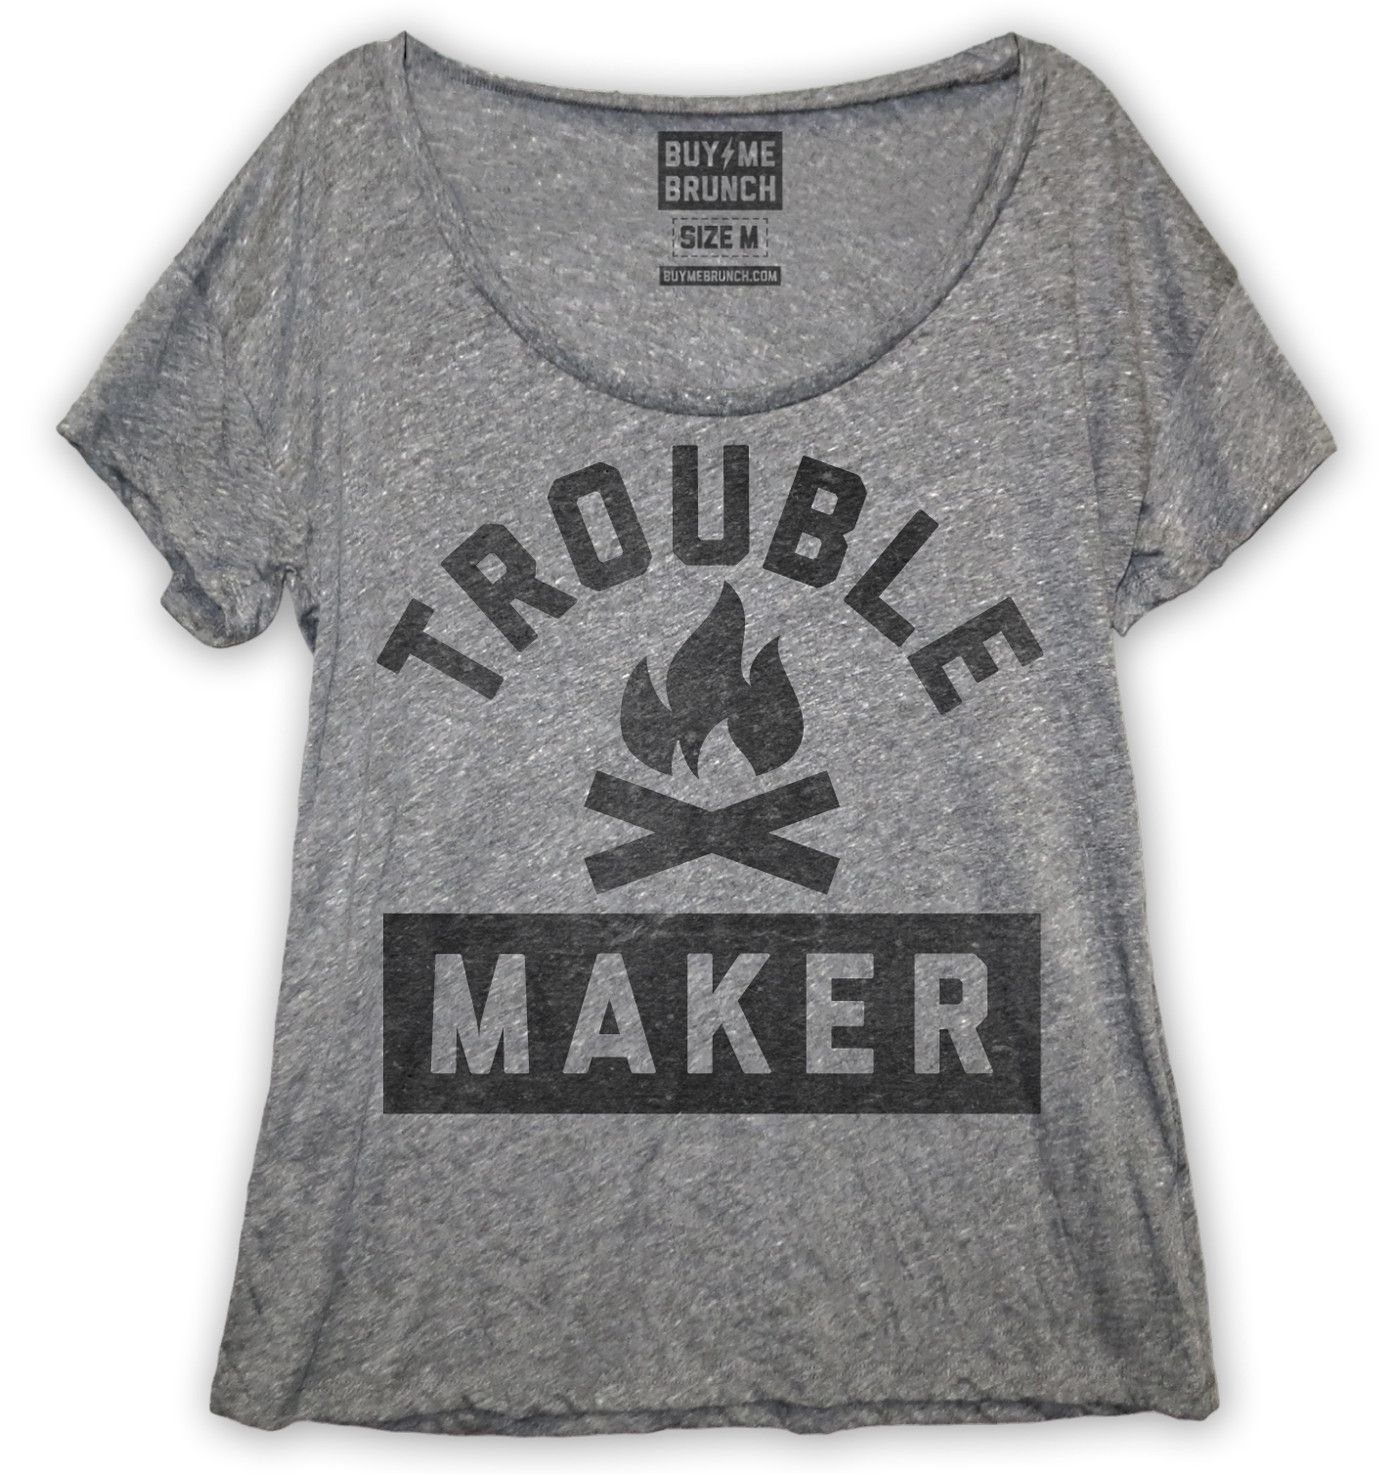 Troublemaker tee brunch gray and clothes for Buy me brunch shirts